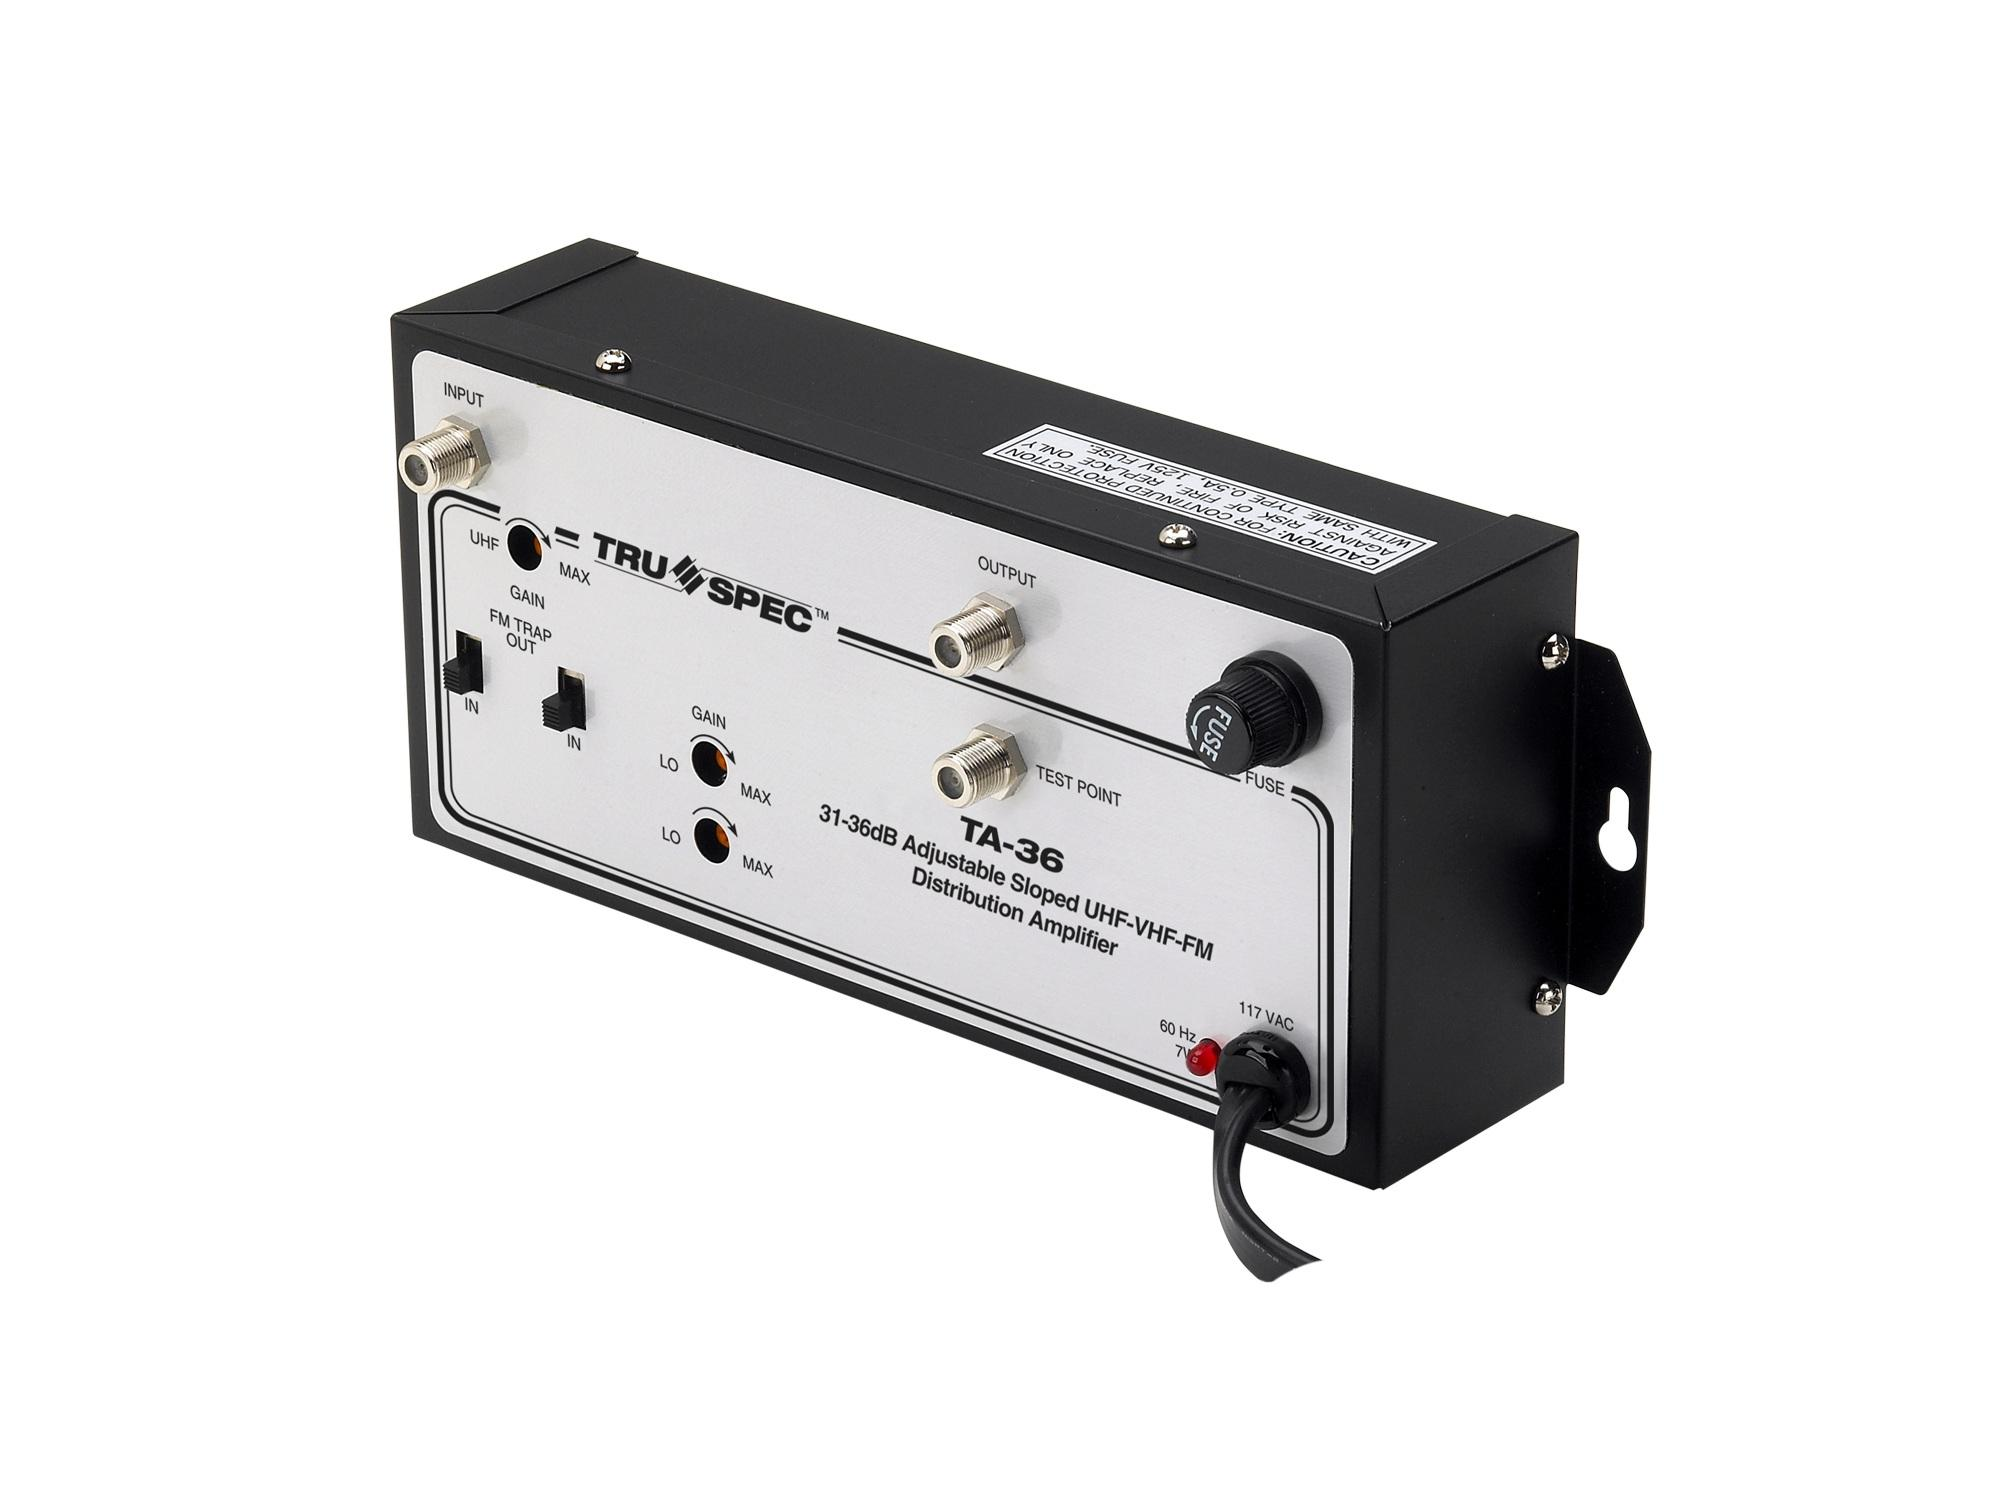 TA-36 36dB Gain UHF/VHF/FM Distribution Amplifier by Pico Digital